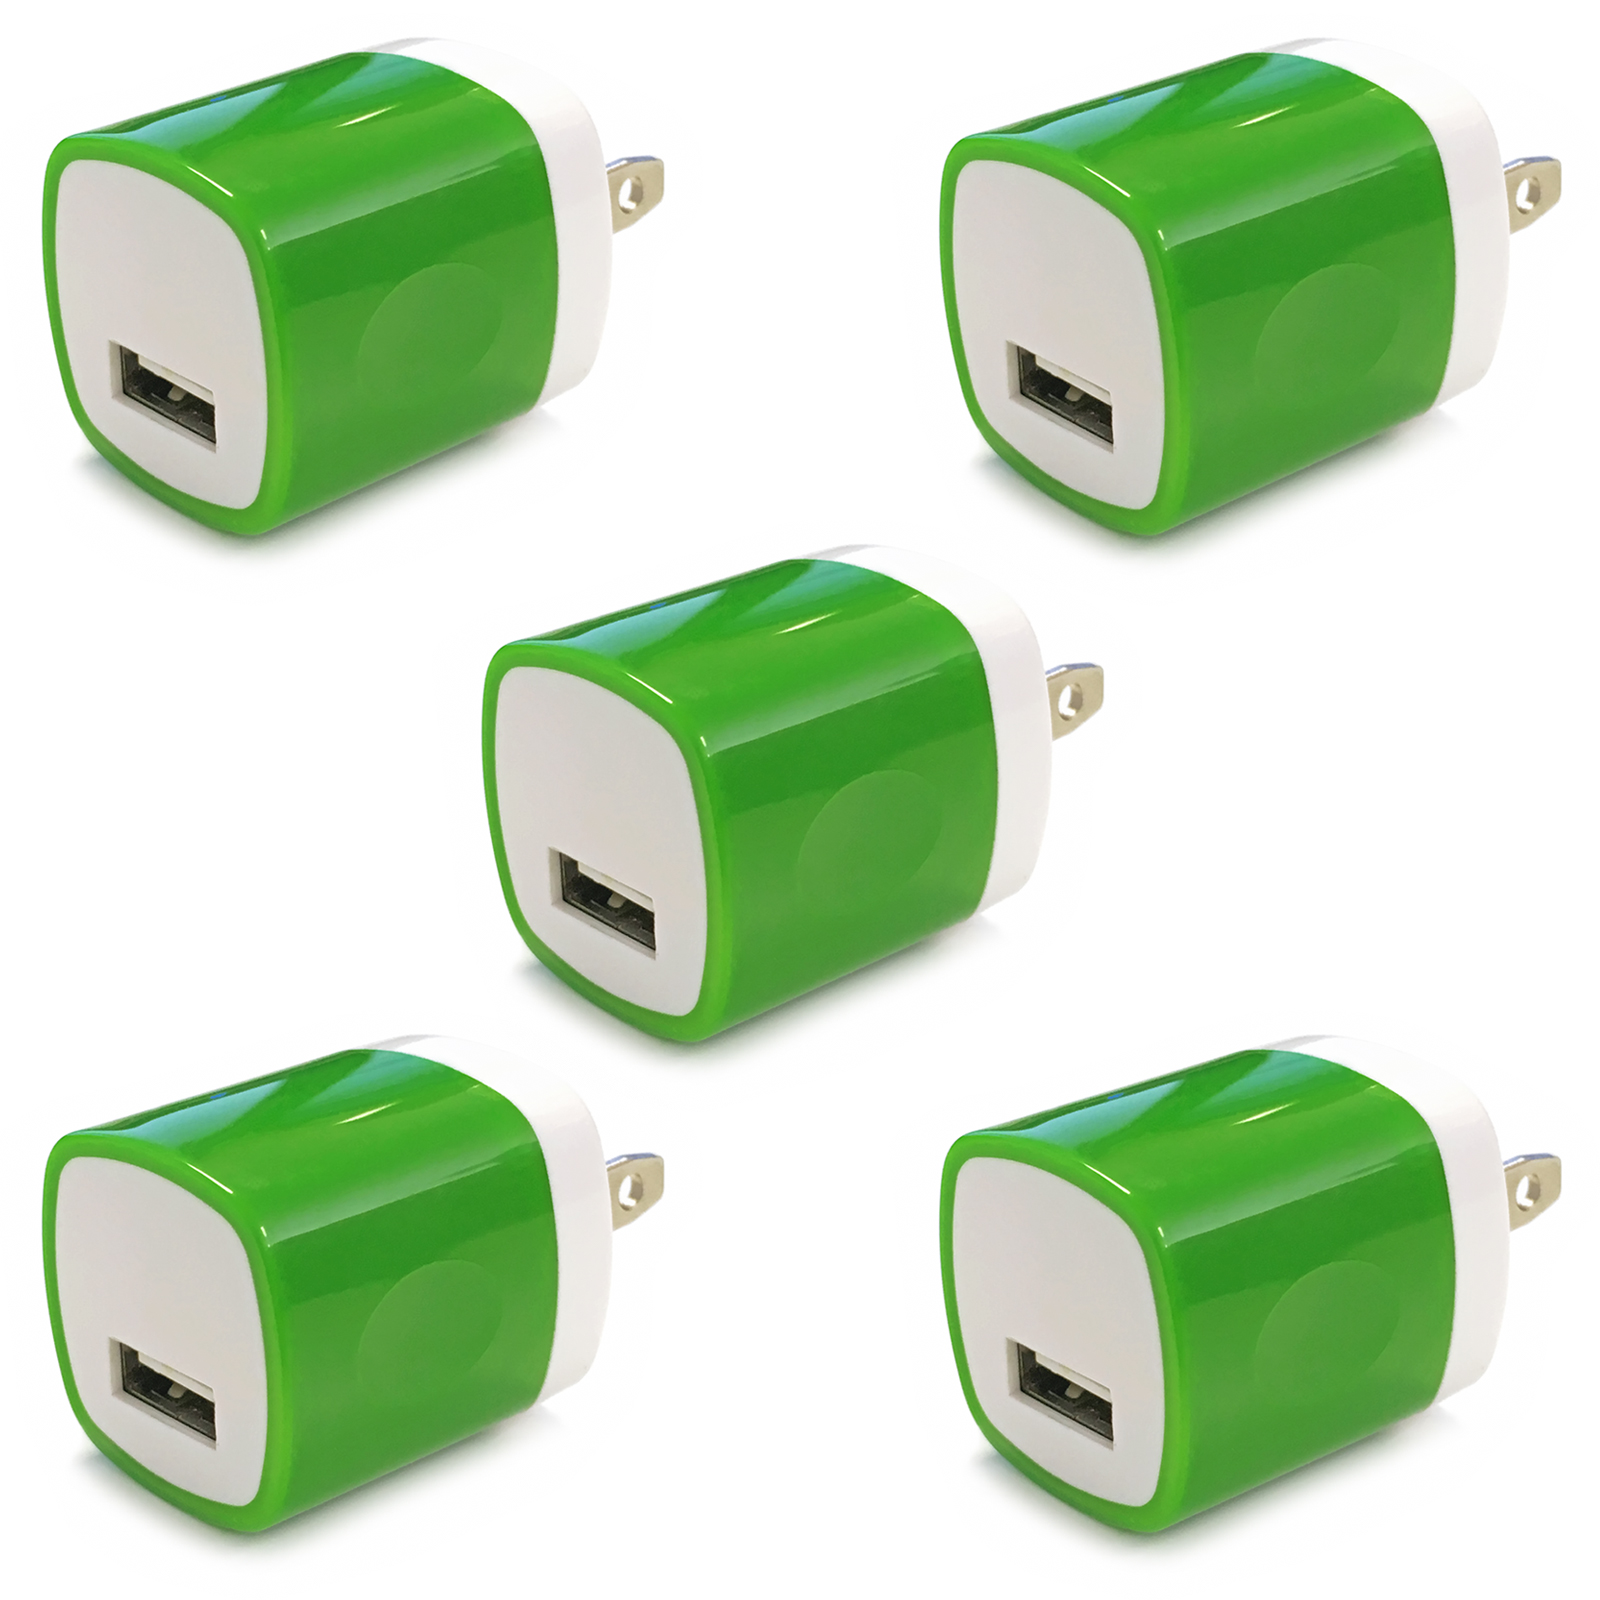 5x USB Wall Charger, Charger Adapter, FREEDOMTECH 1Amp Single Port Quick Charger Plug Cube for iPhone 7/6S/6S Plus/6 Plus/6/5S/5, Samsung Galaxy S7/S6/S5 Edge, LG, HTC, Huawei, Moto, Kindle and More